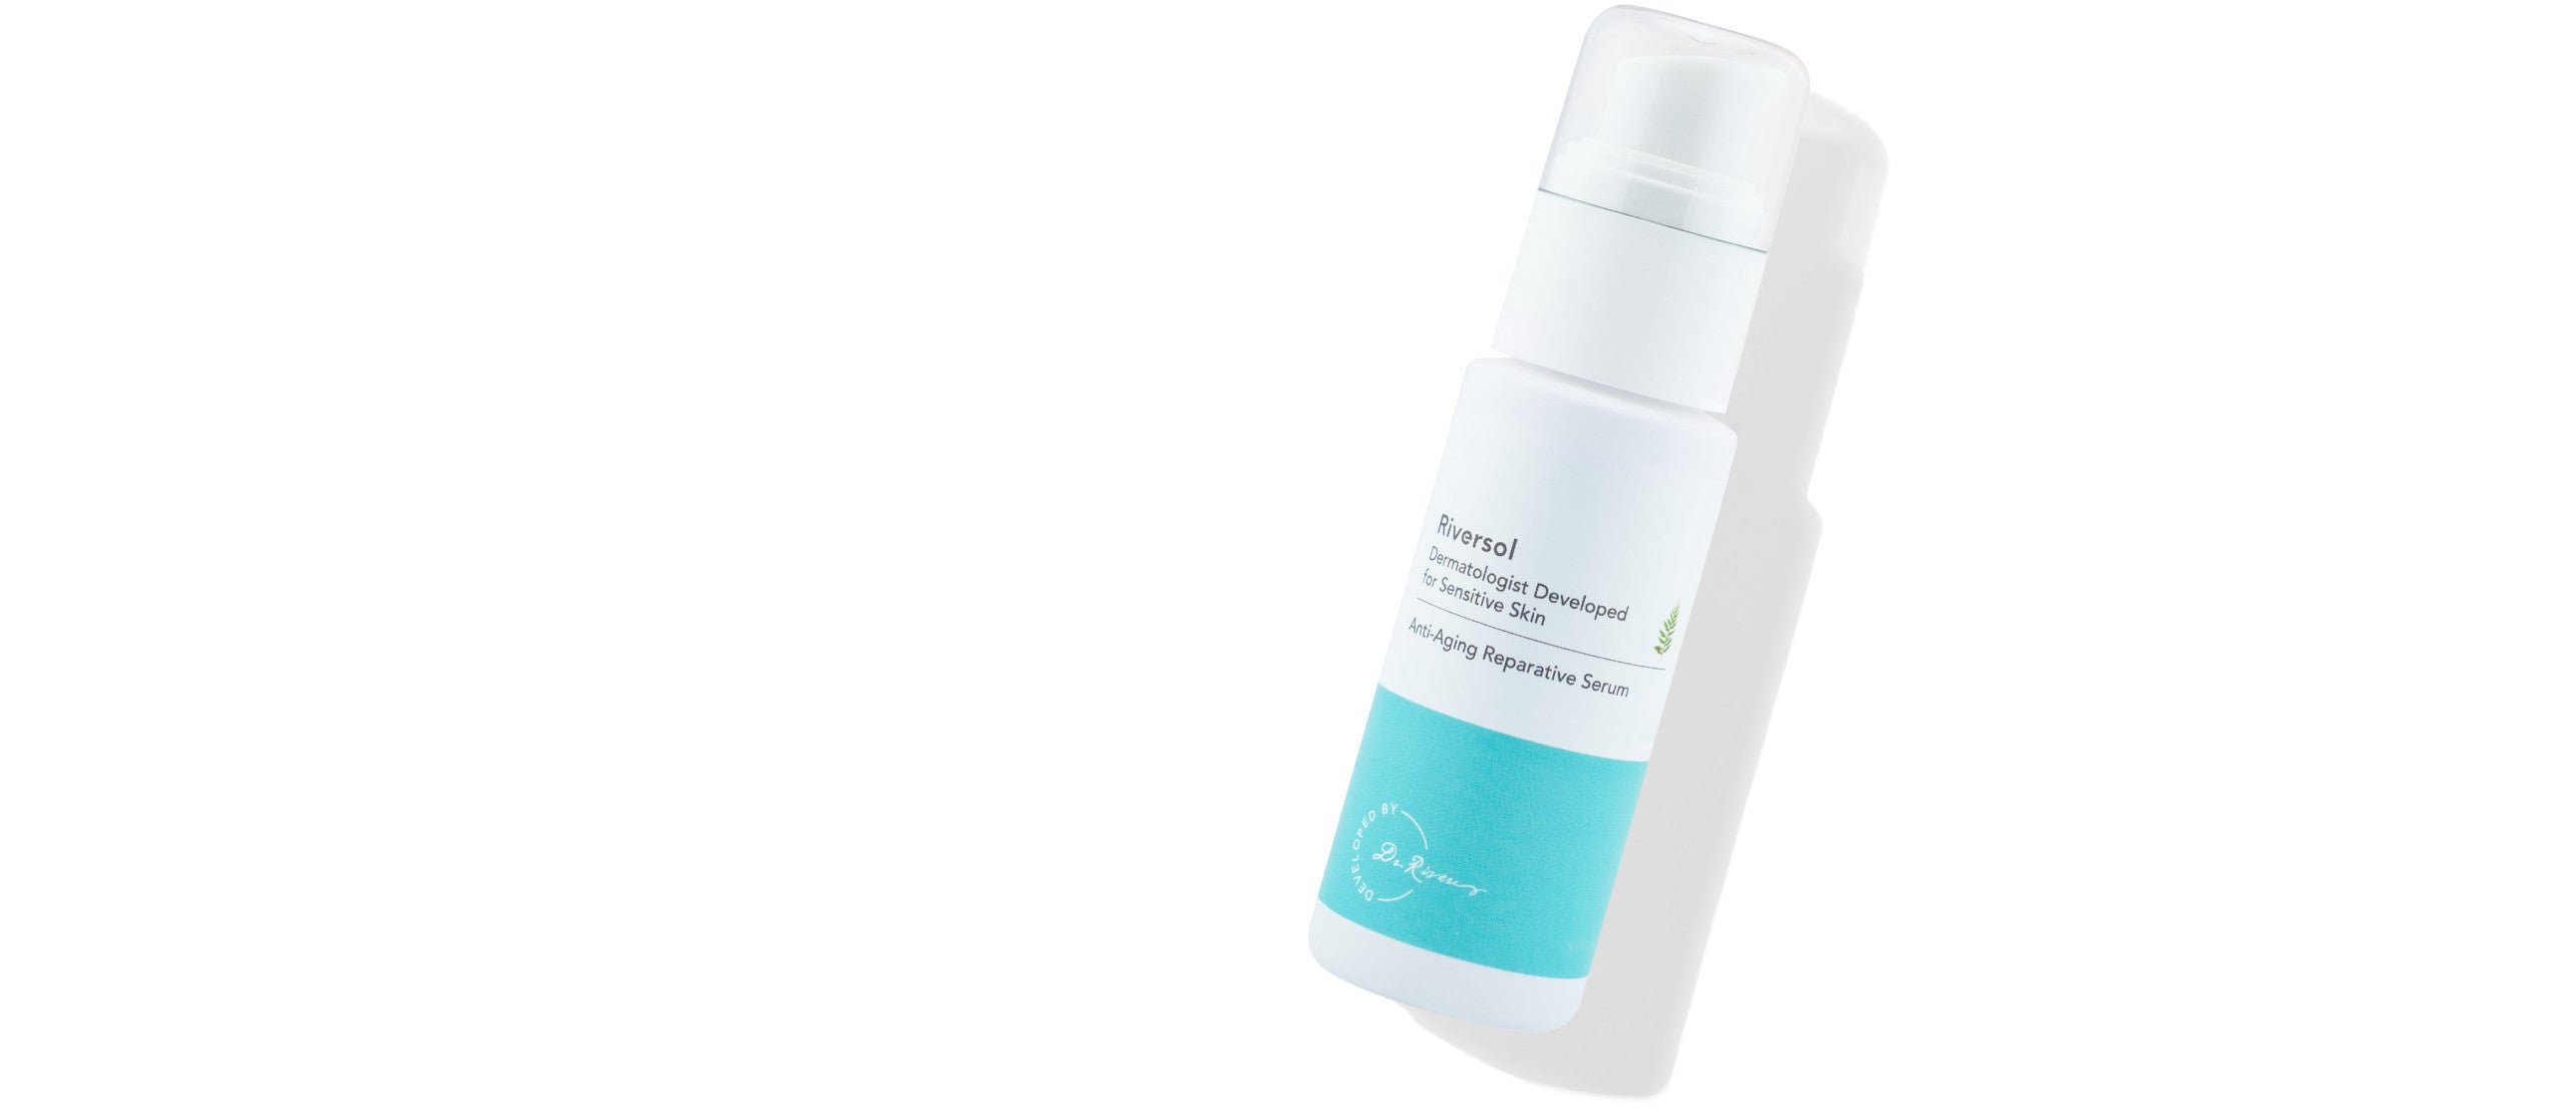 Reduce wrinkles and sun </br>damage without irritation.